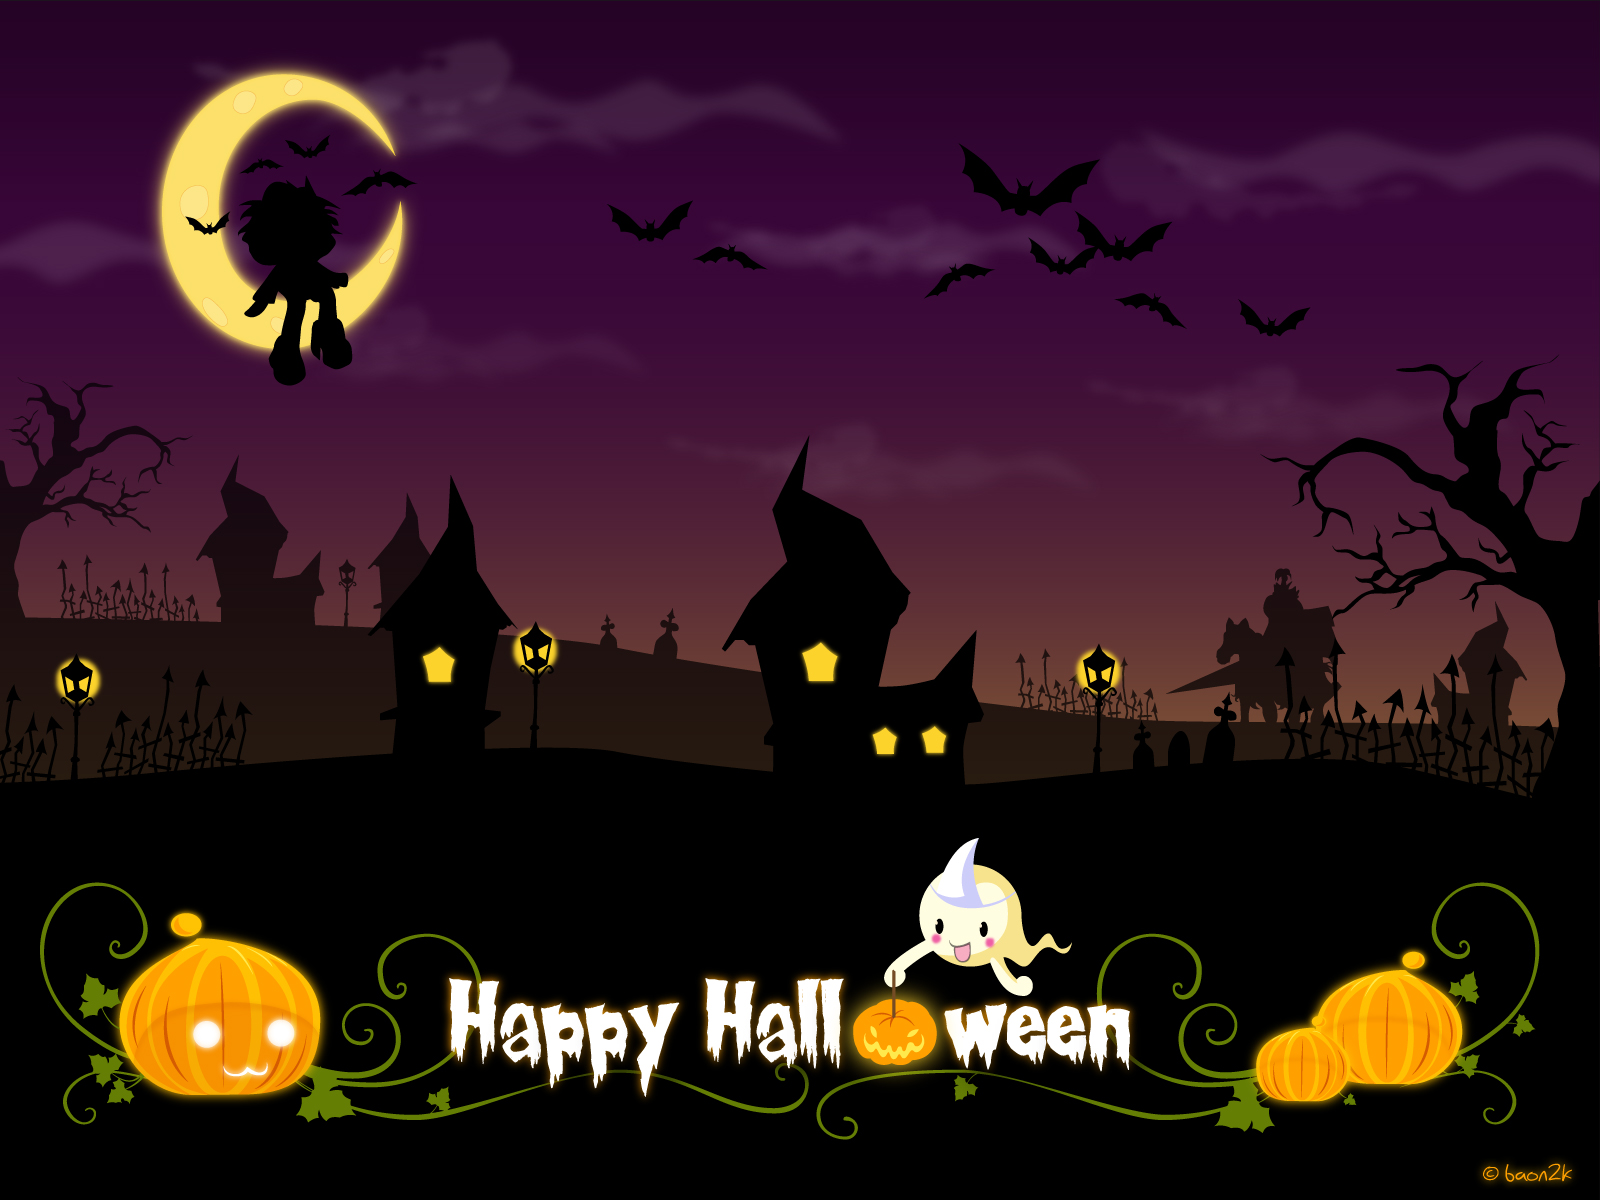 60 cute Halloween wallpapers HQ   Garmahis Design Magazine 1600x1200